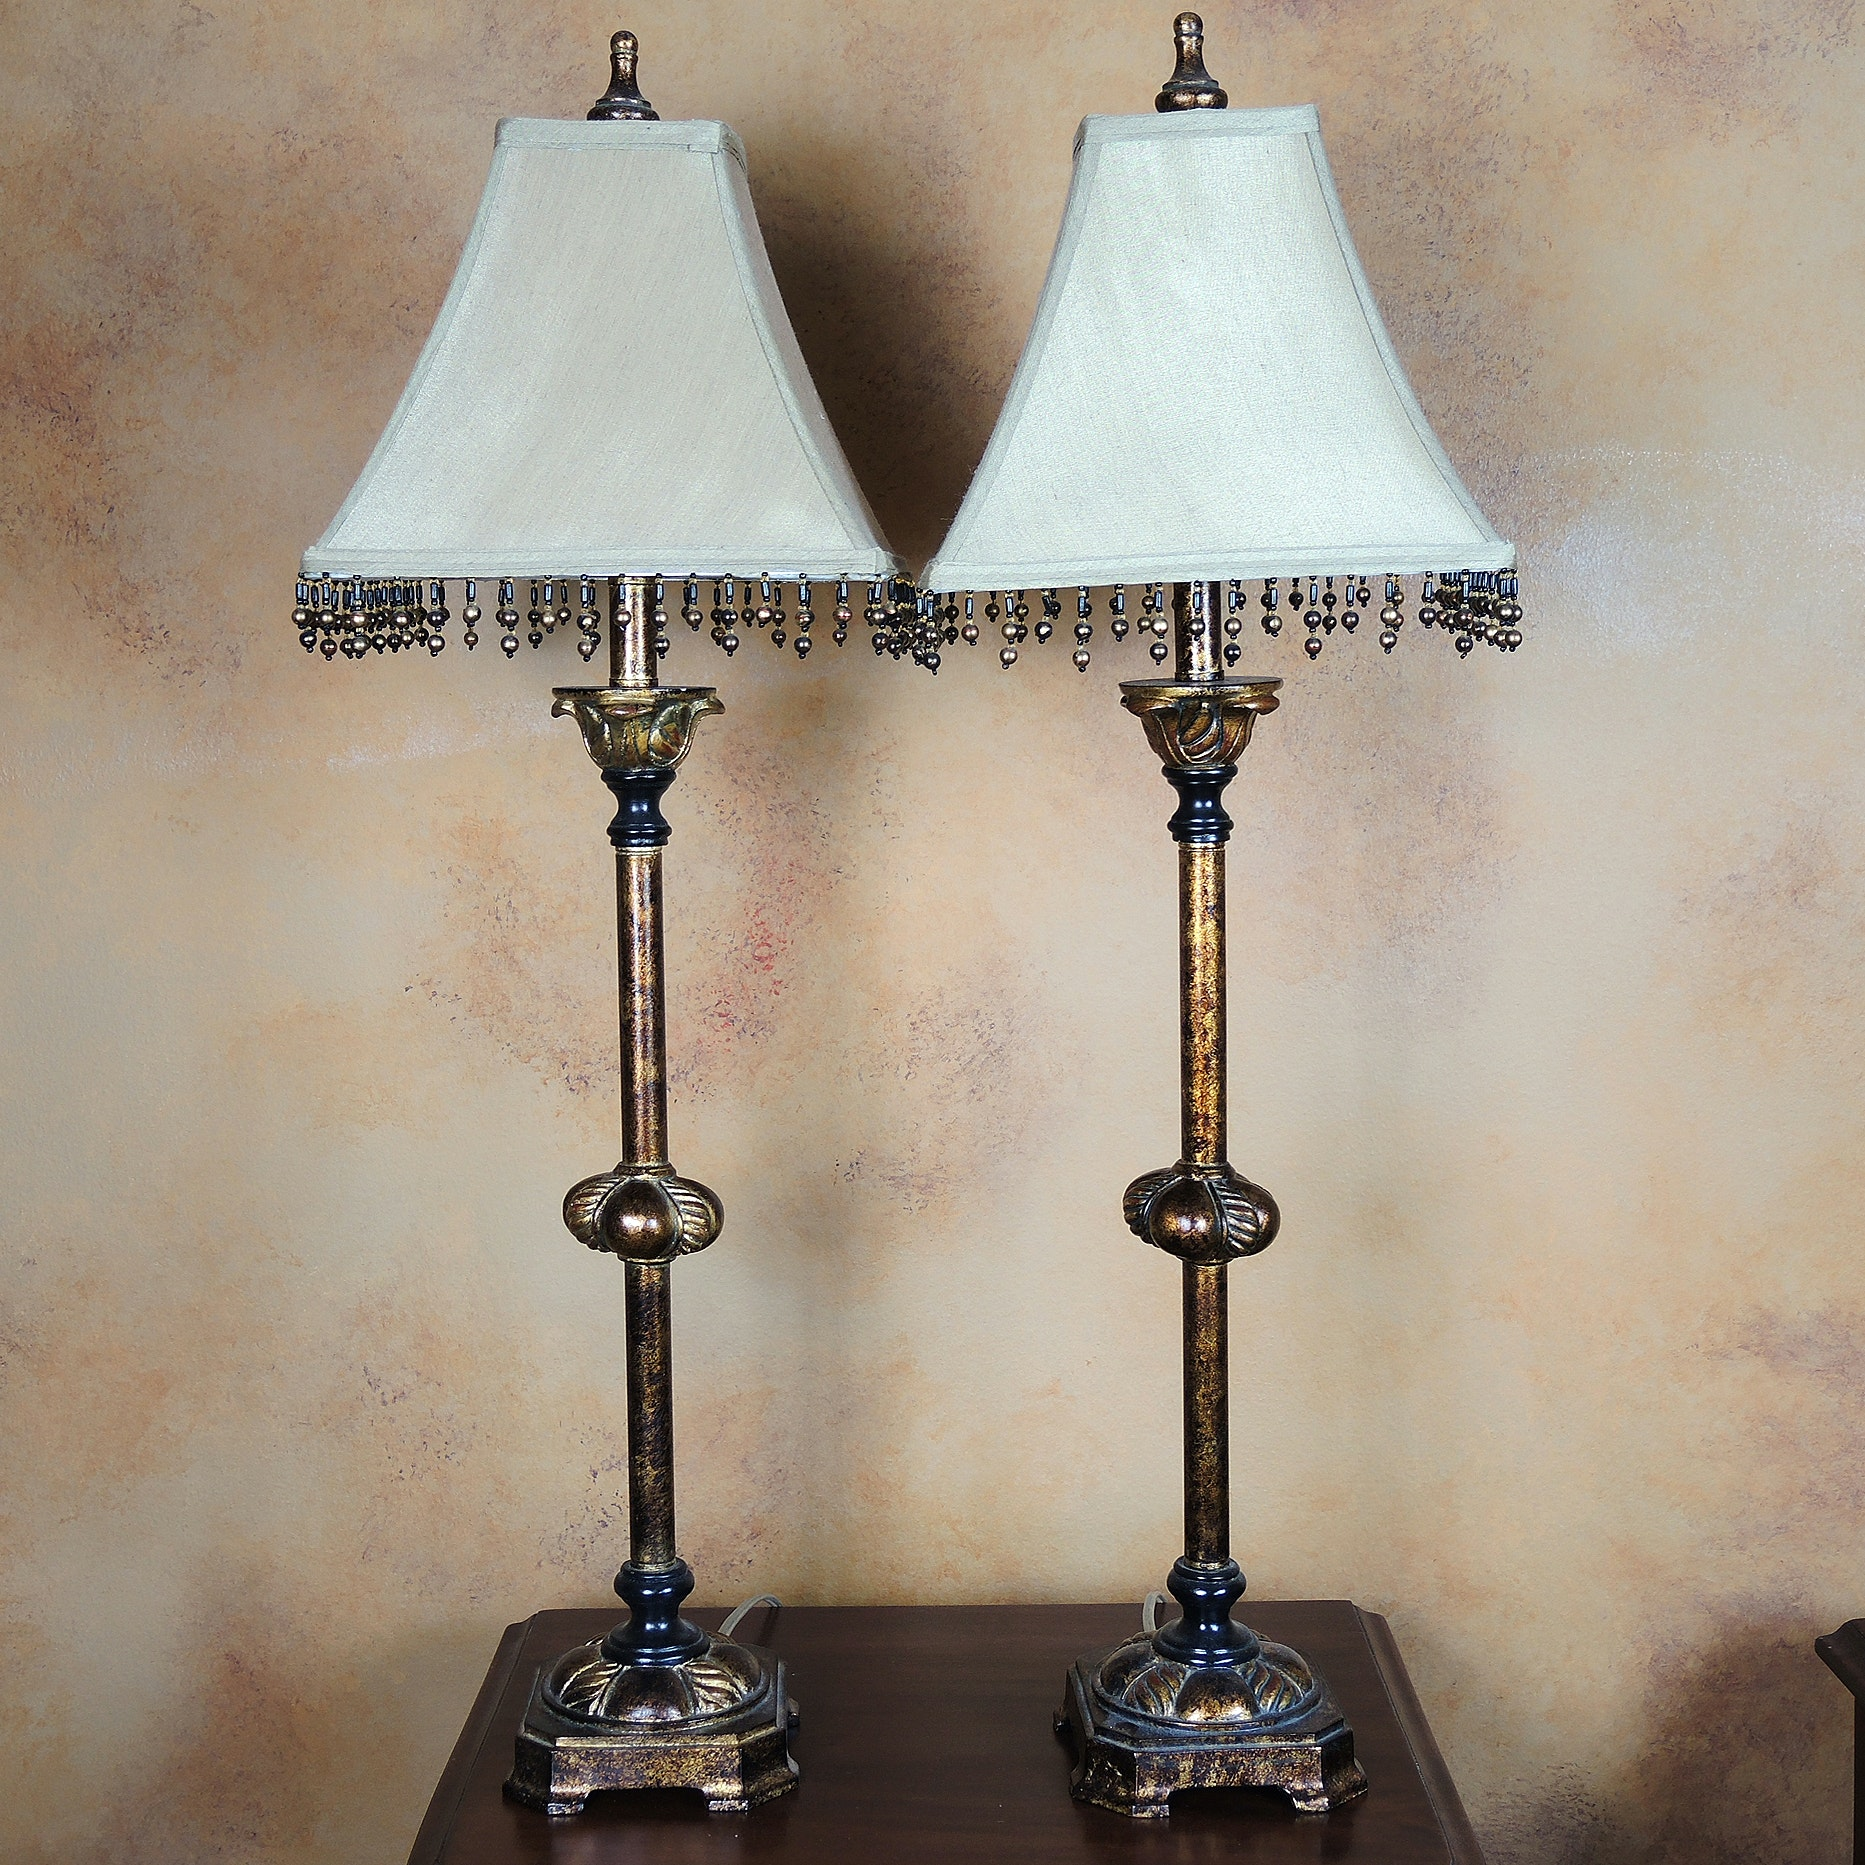 Matching Candlestick Style Lamps with Beaded Shades